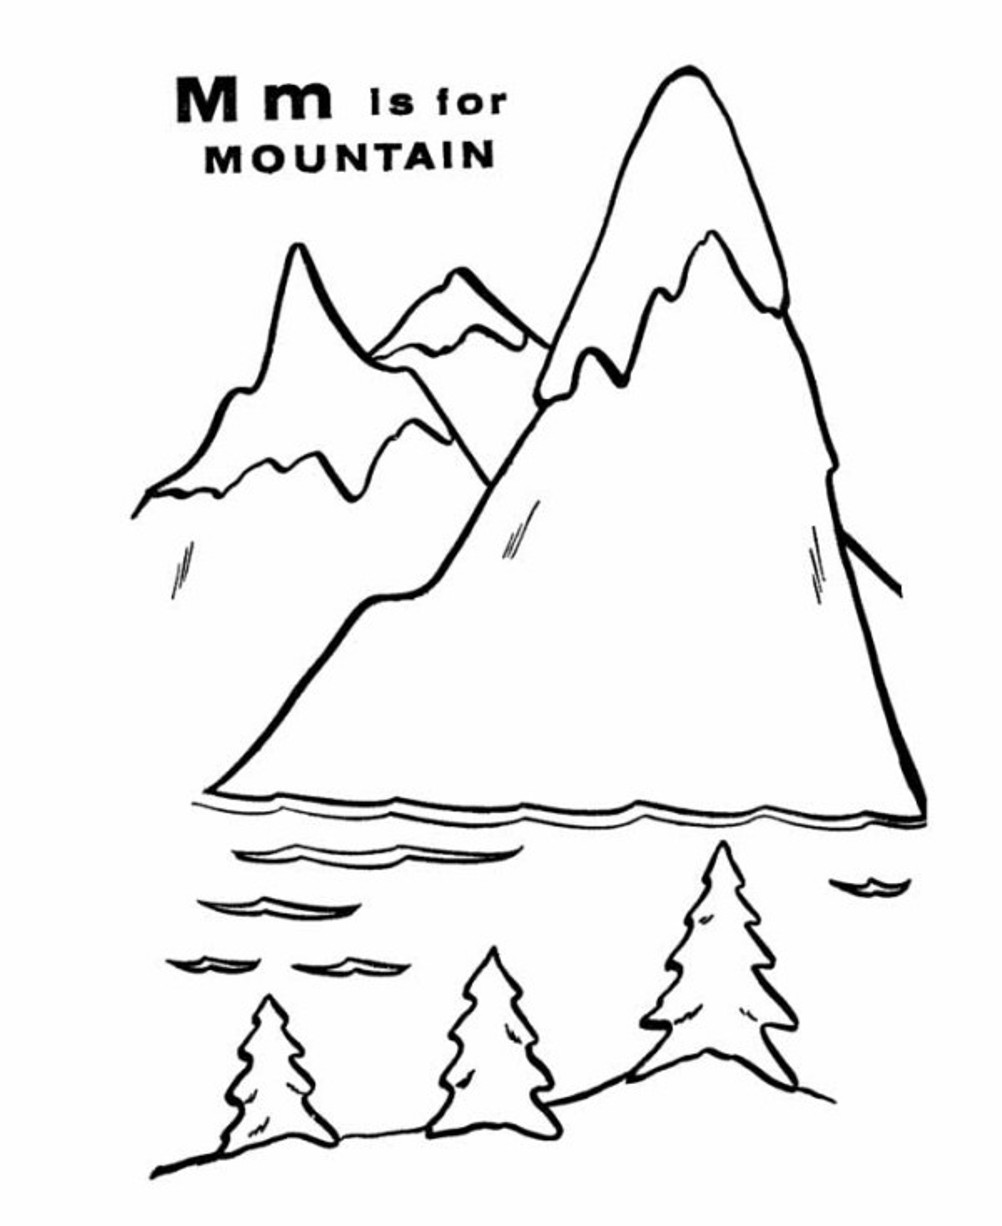 Mountain coloring pages to download